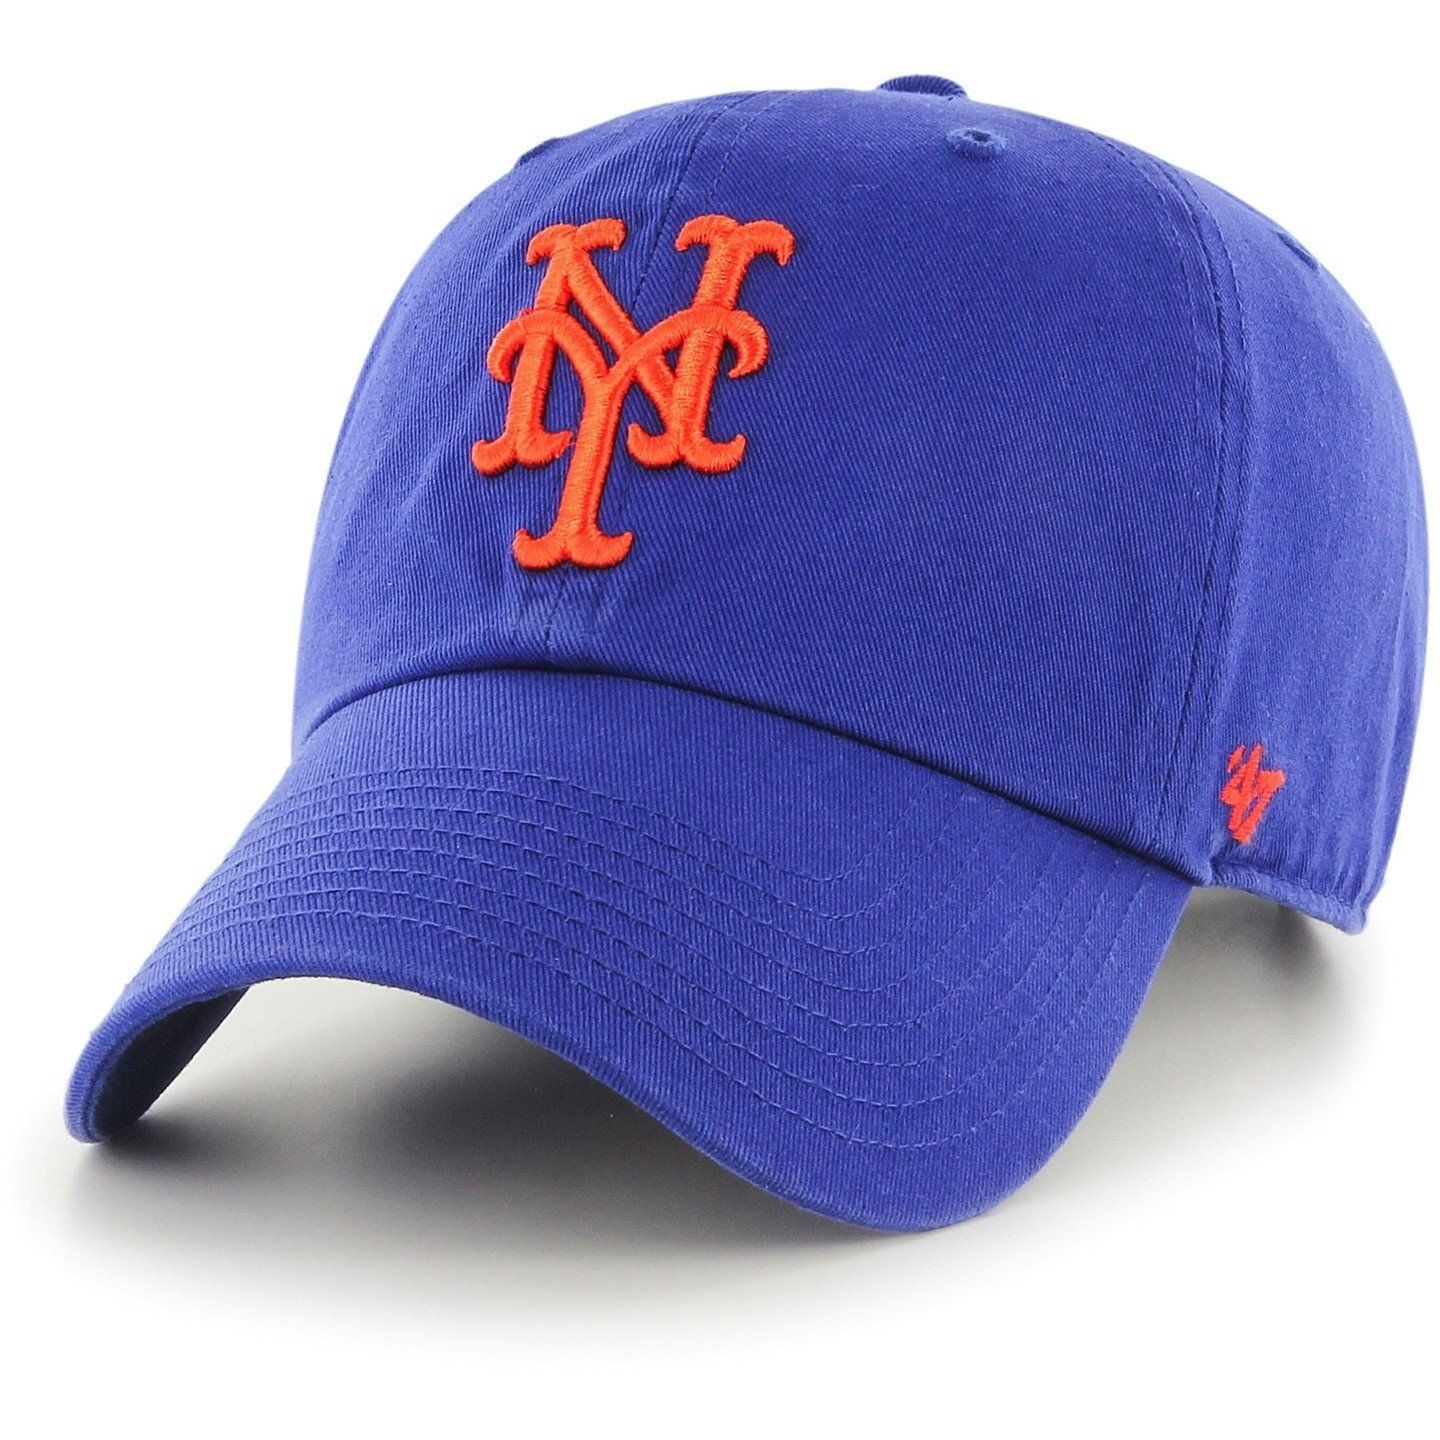 uk store get online affordable price 47 Brand New York Mets Clean Up Hat | New york mets, Wash baseball ...